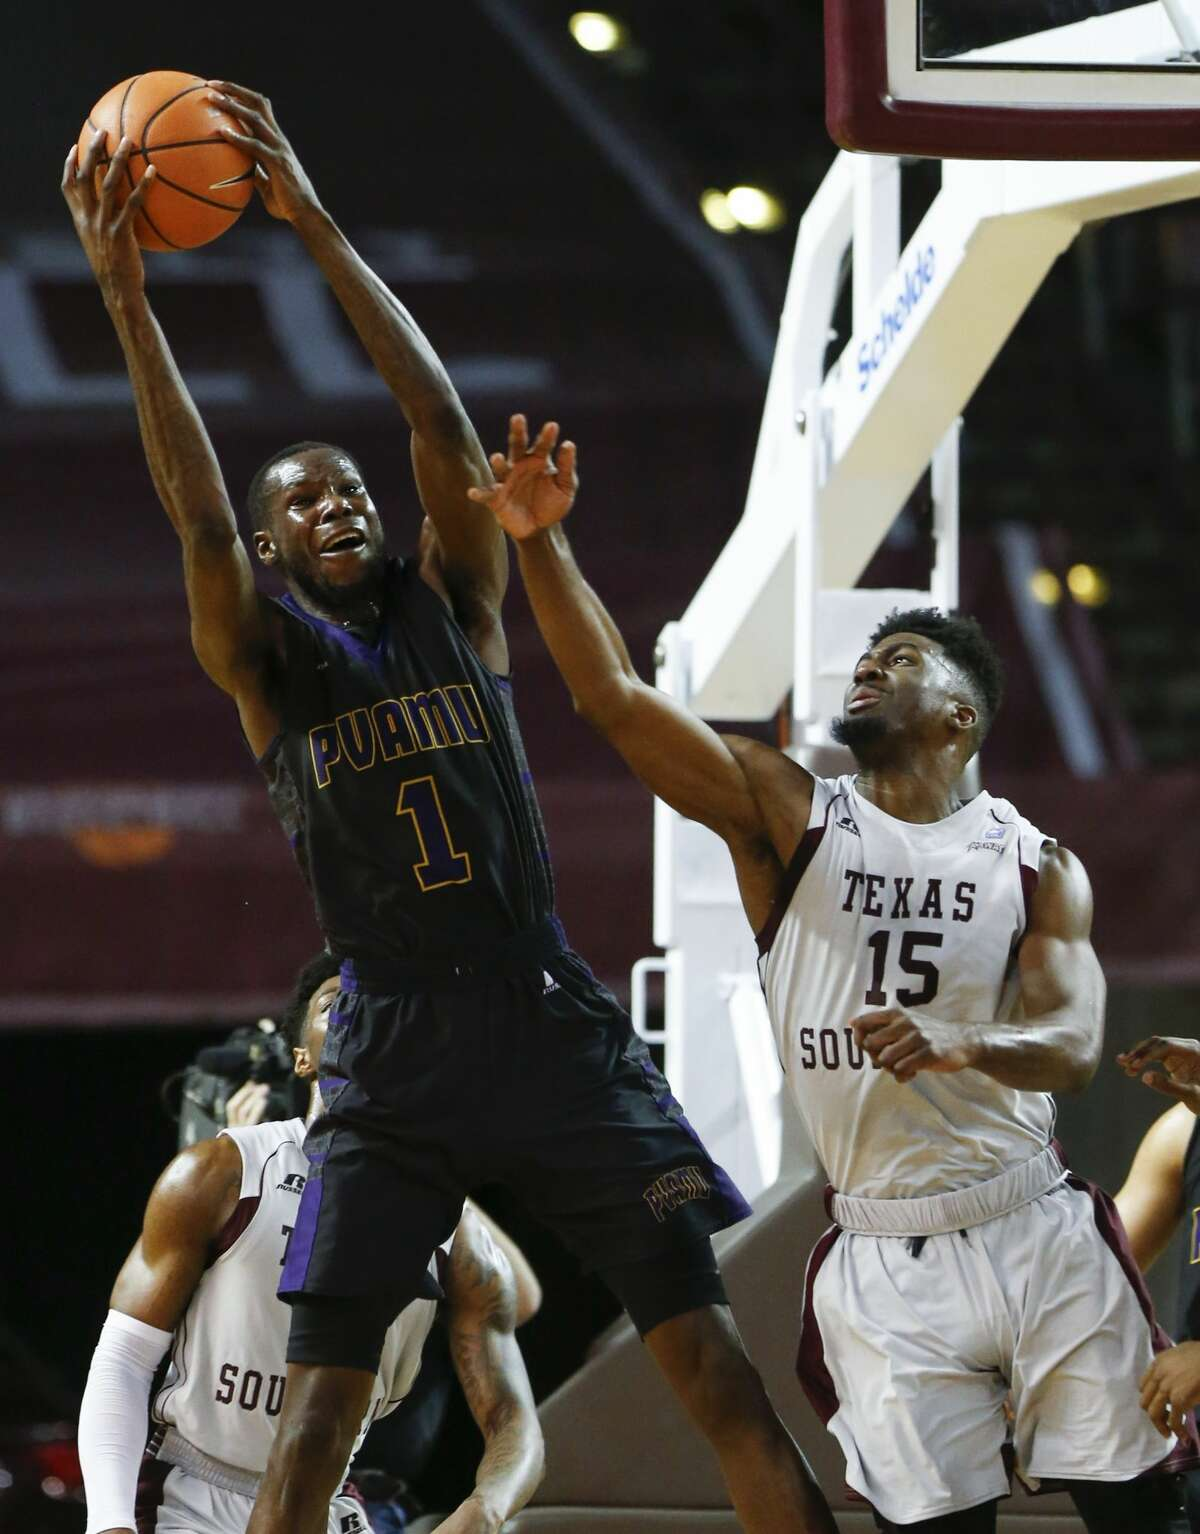 Prairie View A&M forward Keion Alexander (1) grabs a rebound away from Texas Southern forward Marquis Salmon (15) during the second half of an NCAA basketball game at TSU's HPE Arena on Saturday, Jan. 6, 2018, in Houston. ( Brett Coomer / Houston Chronicle )